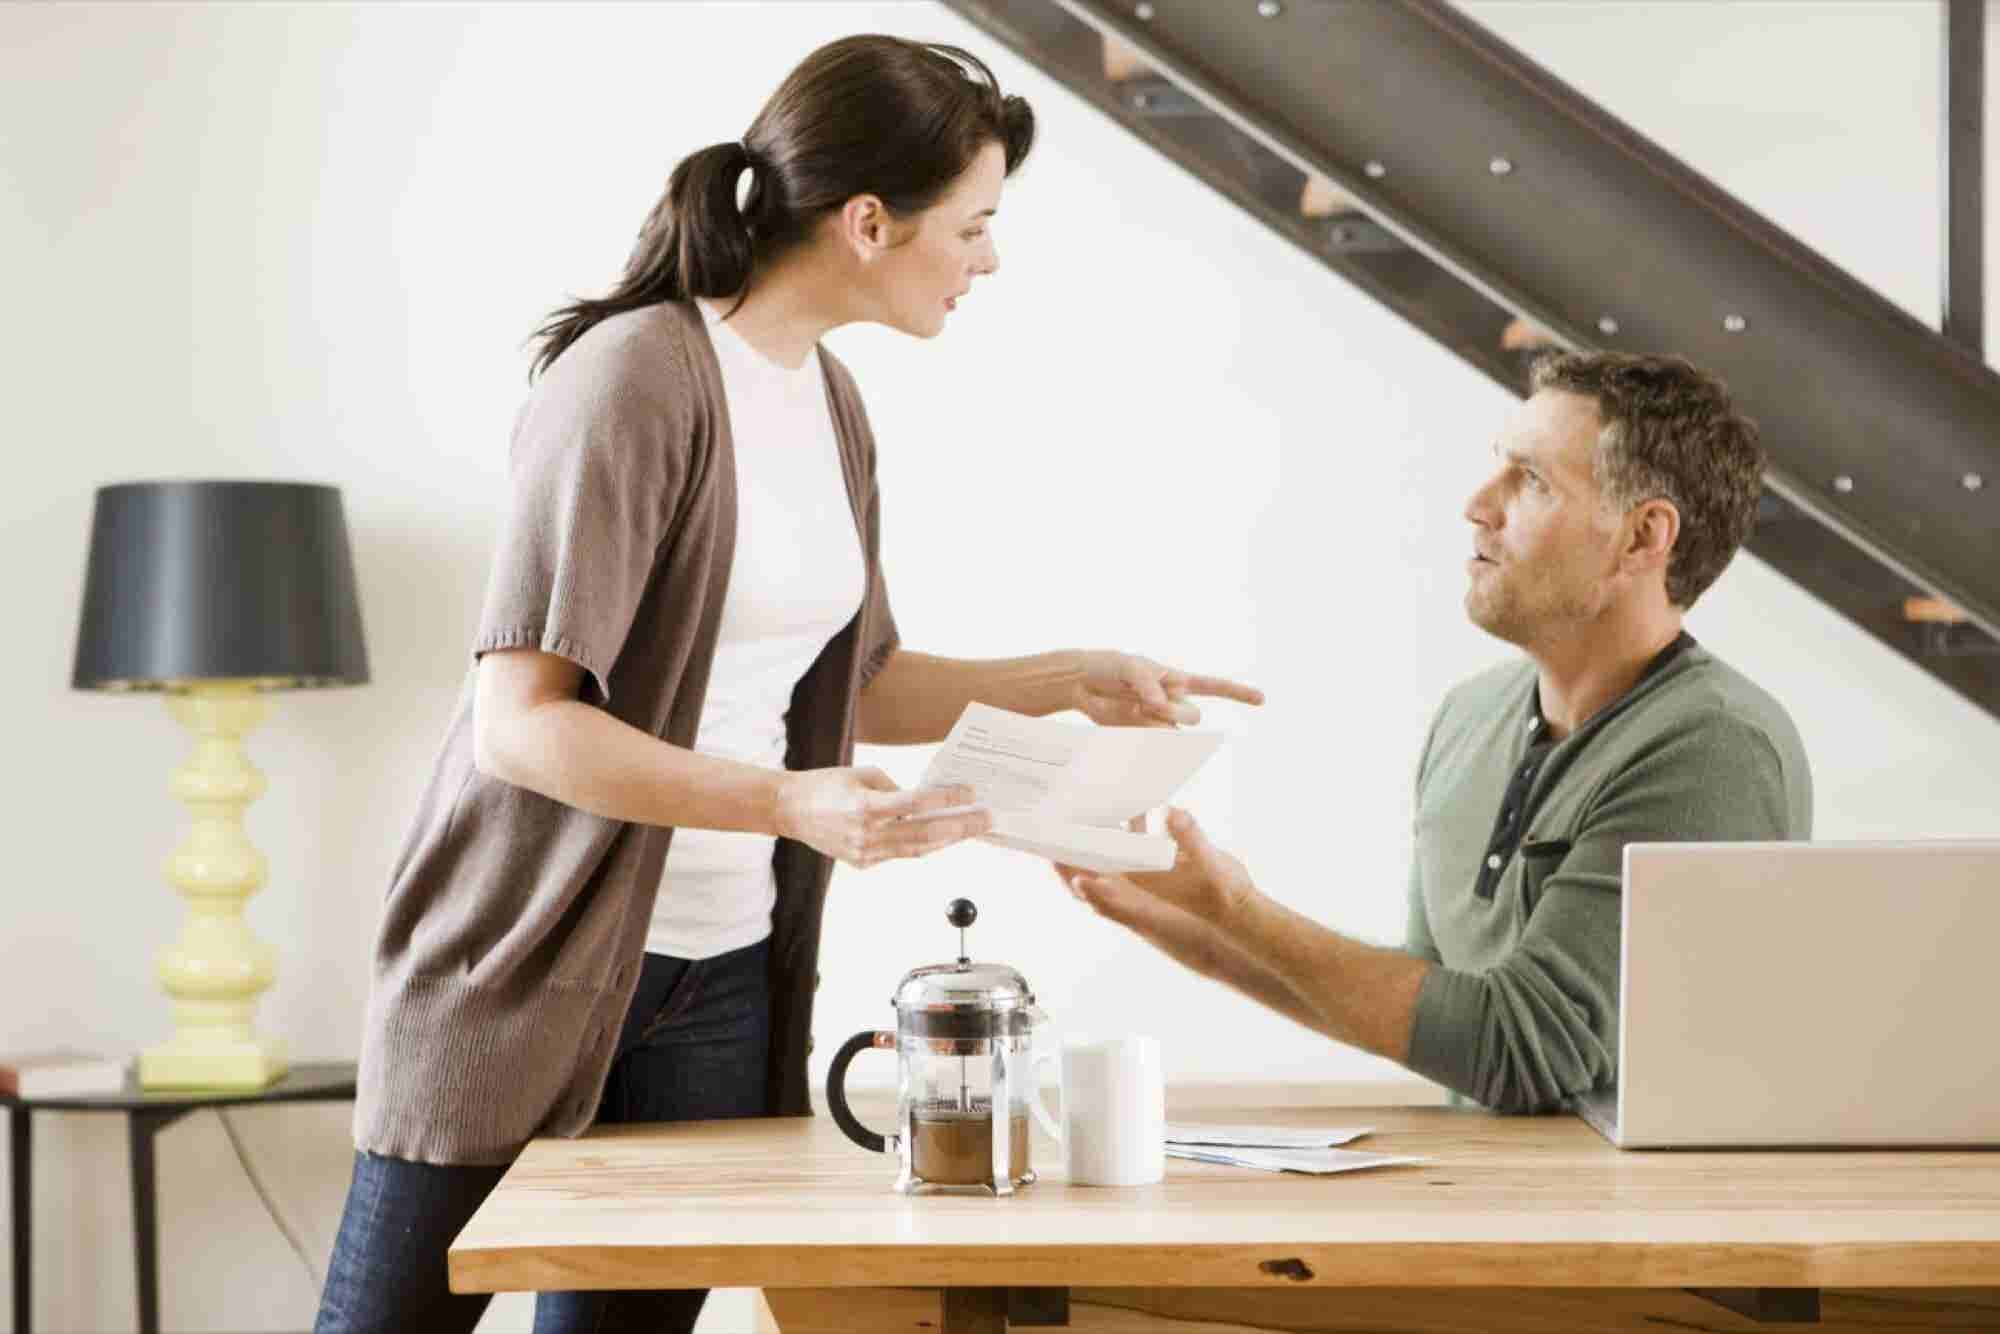 Ask the Relationship Expert: 'I Resent That My Partner Lets Important Tasks Fall Through the Cracks'